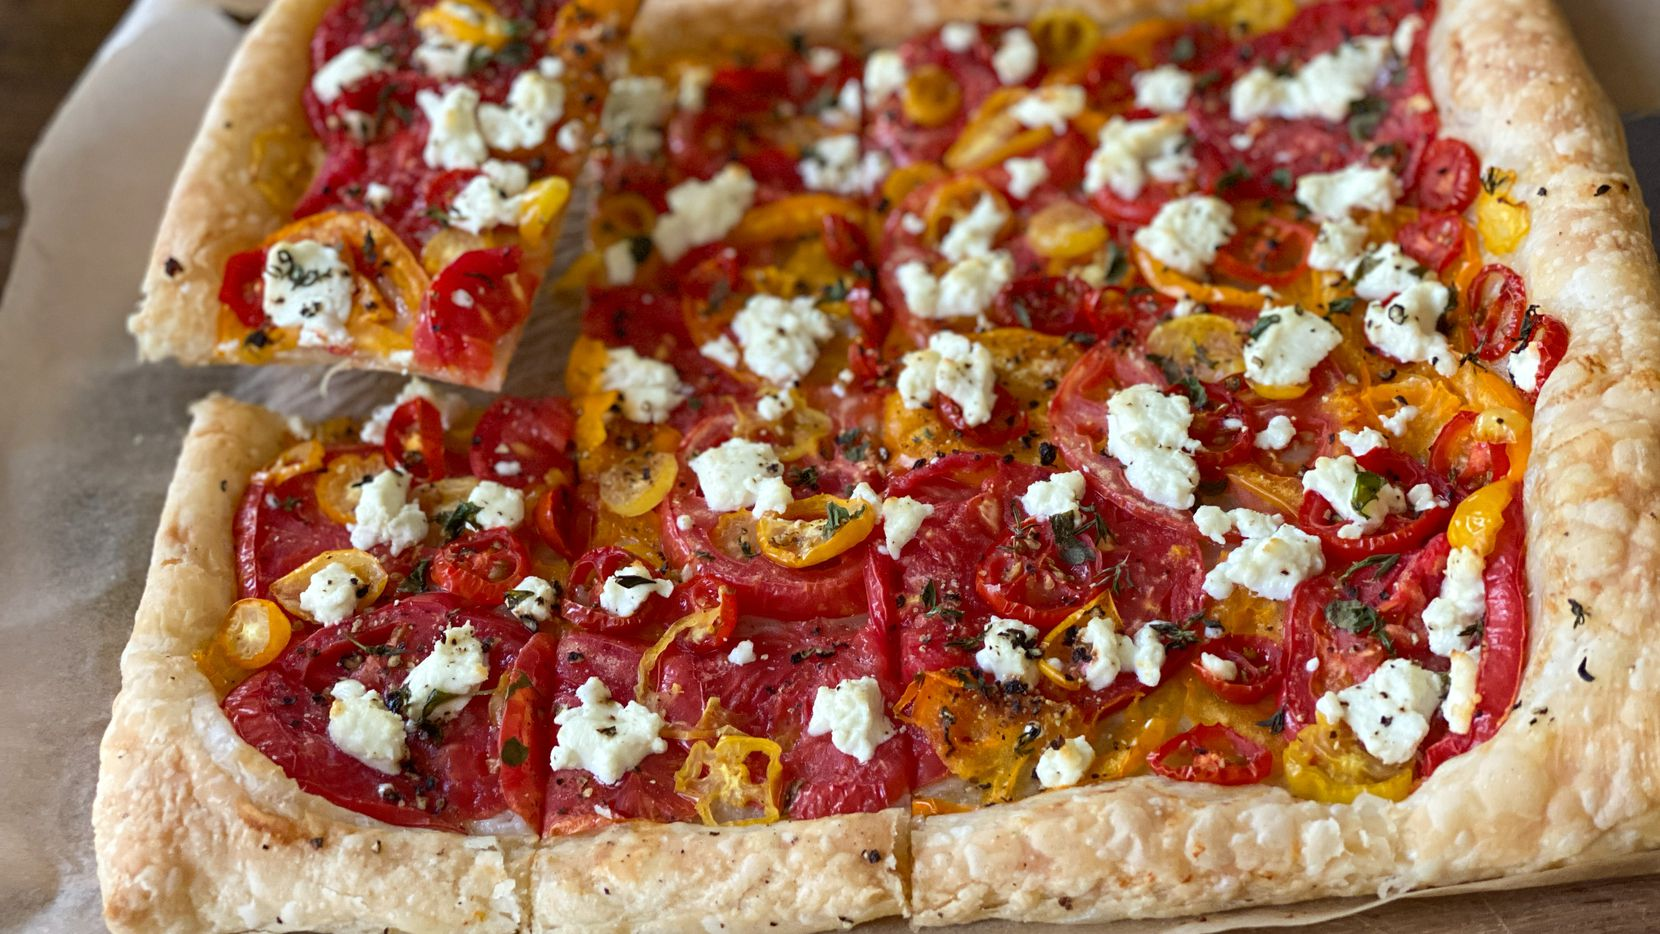 Tomato Tart with Goat Cheese and Thyme